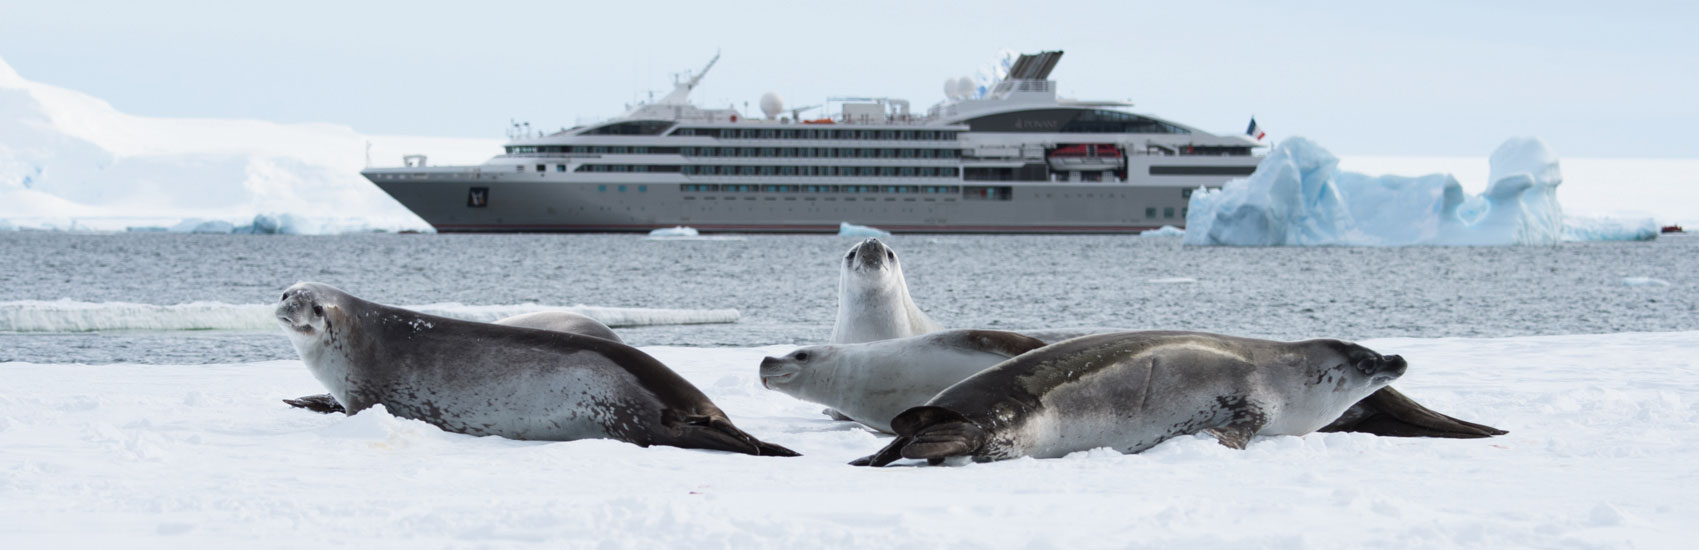 Air Credit Offer with Ponant to Antarctica 3